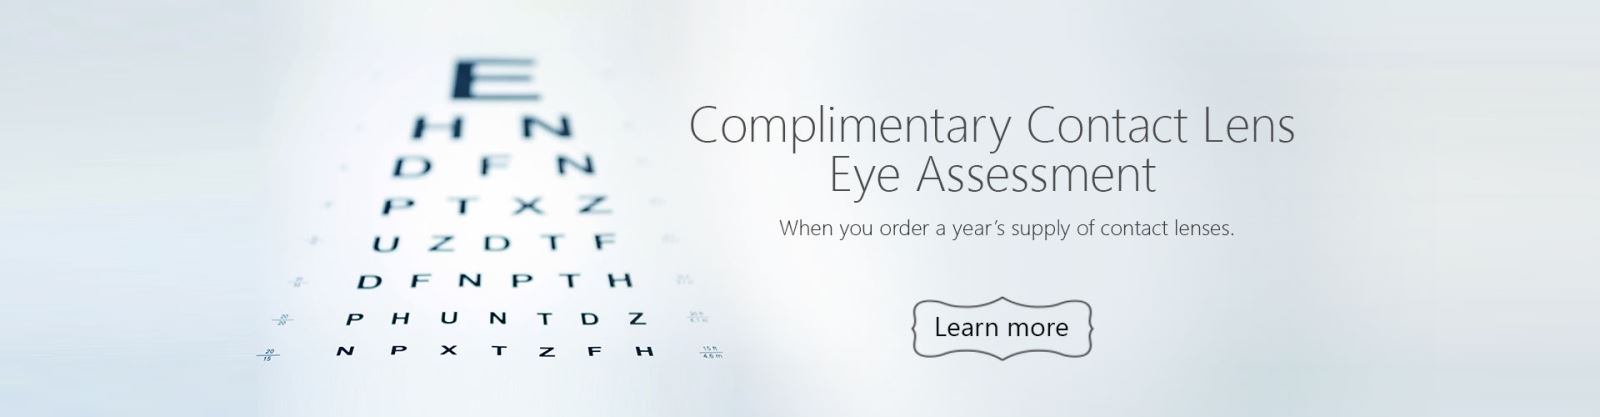 Complimentary Contact Lens Assessment